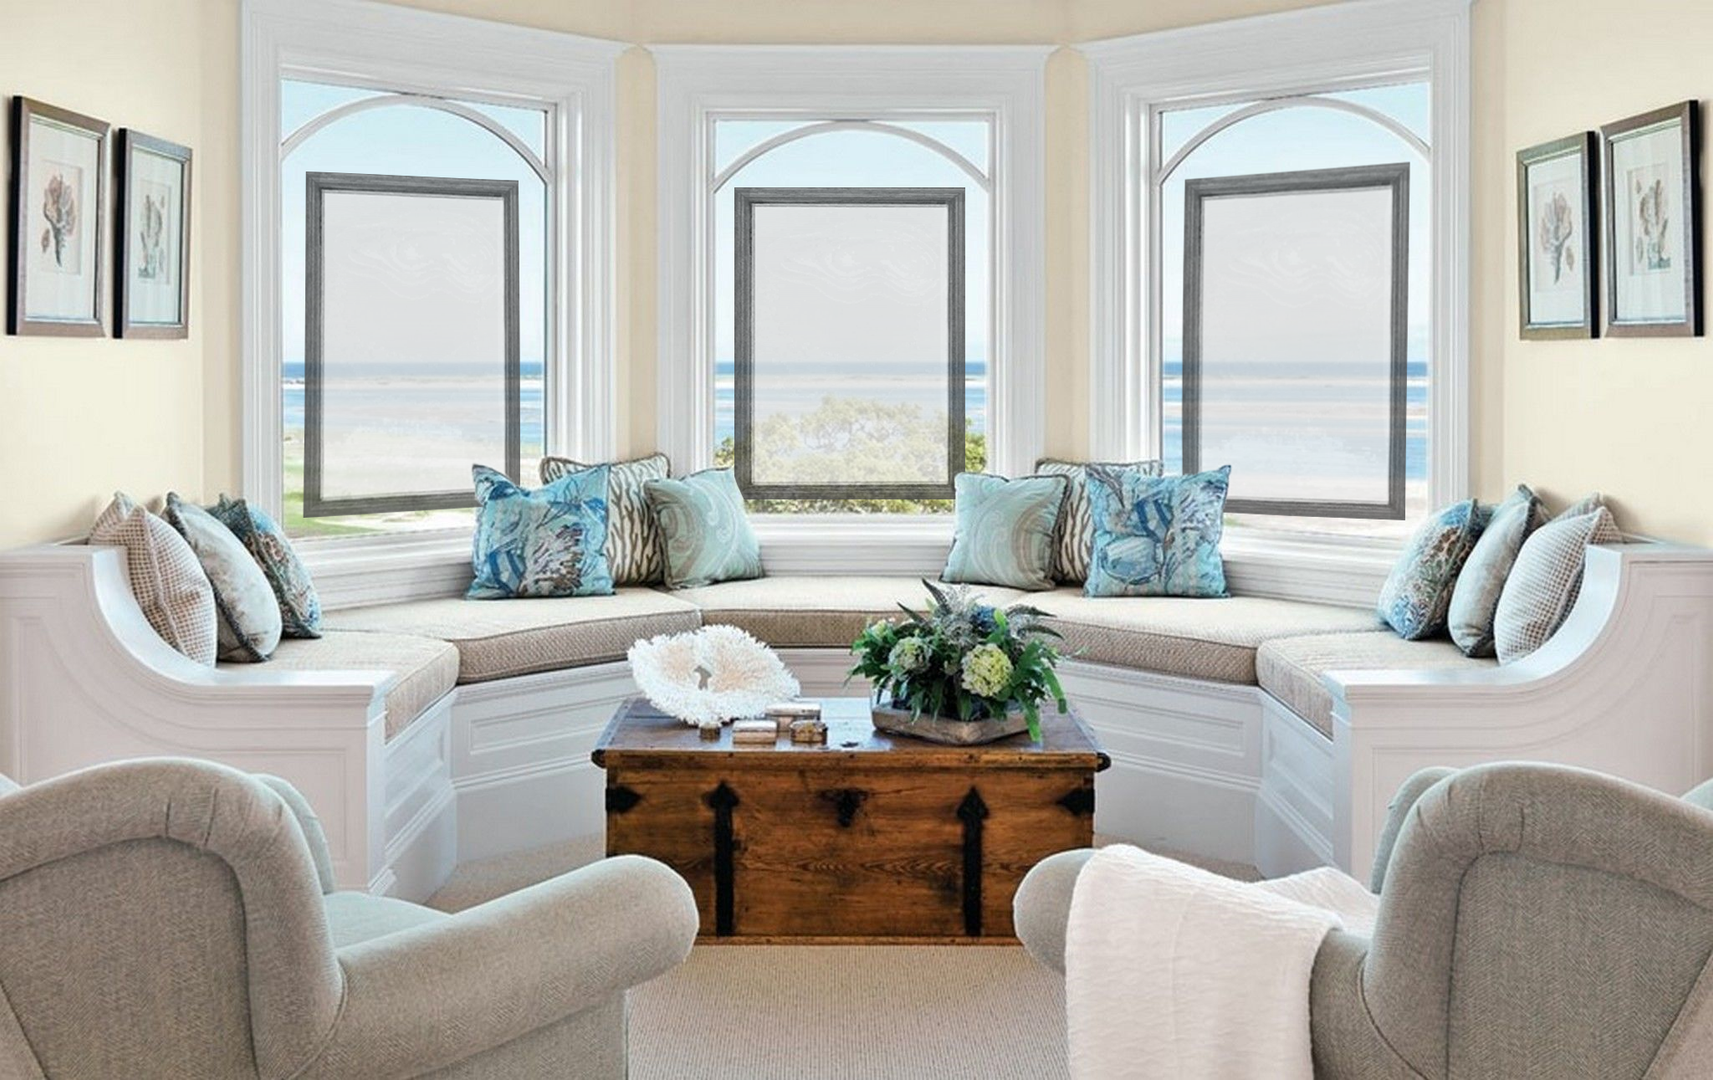 Window Treatments for Coastal View Room